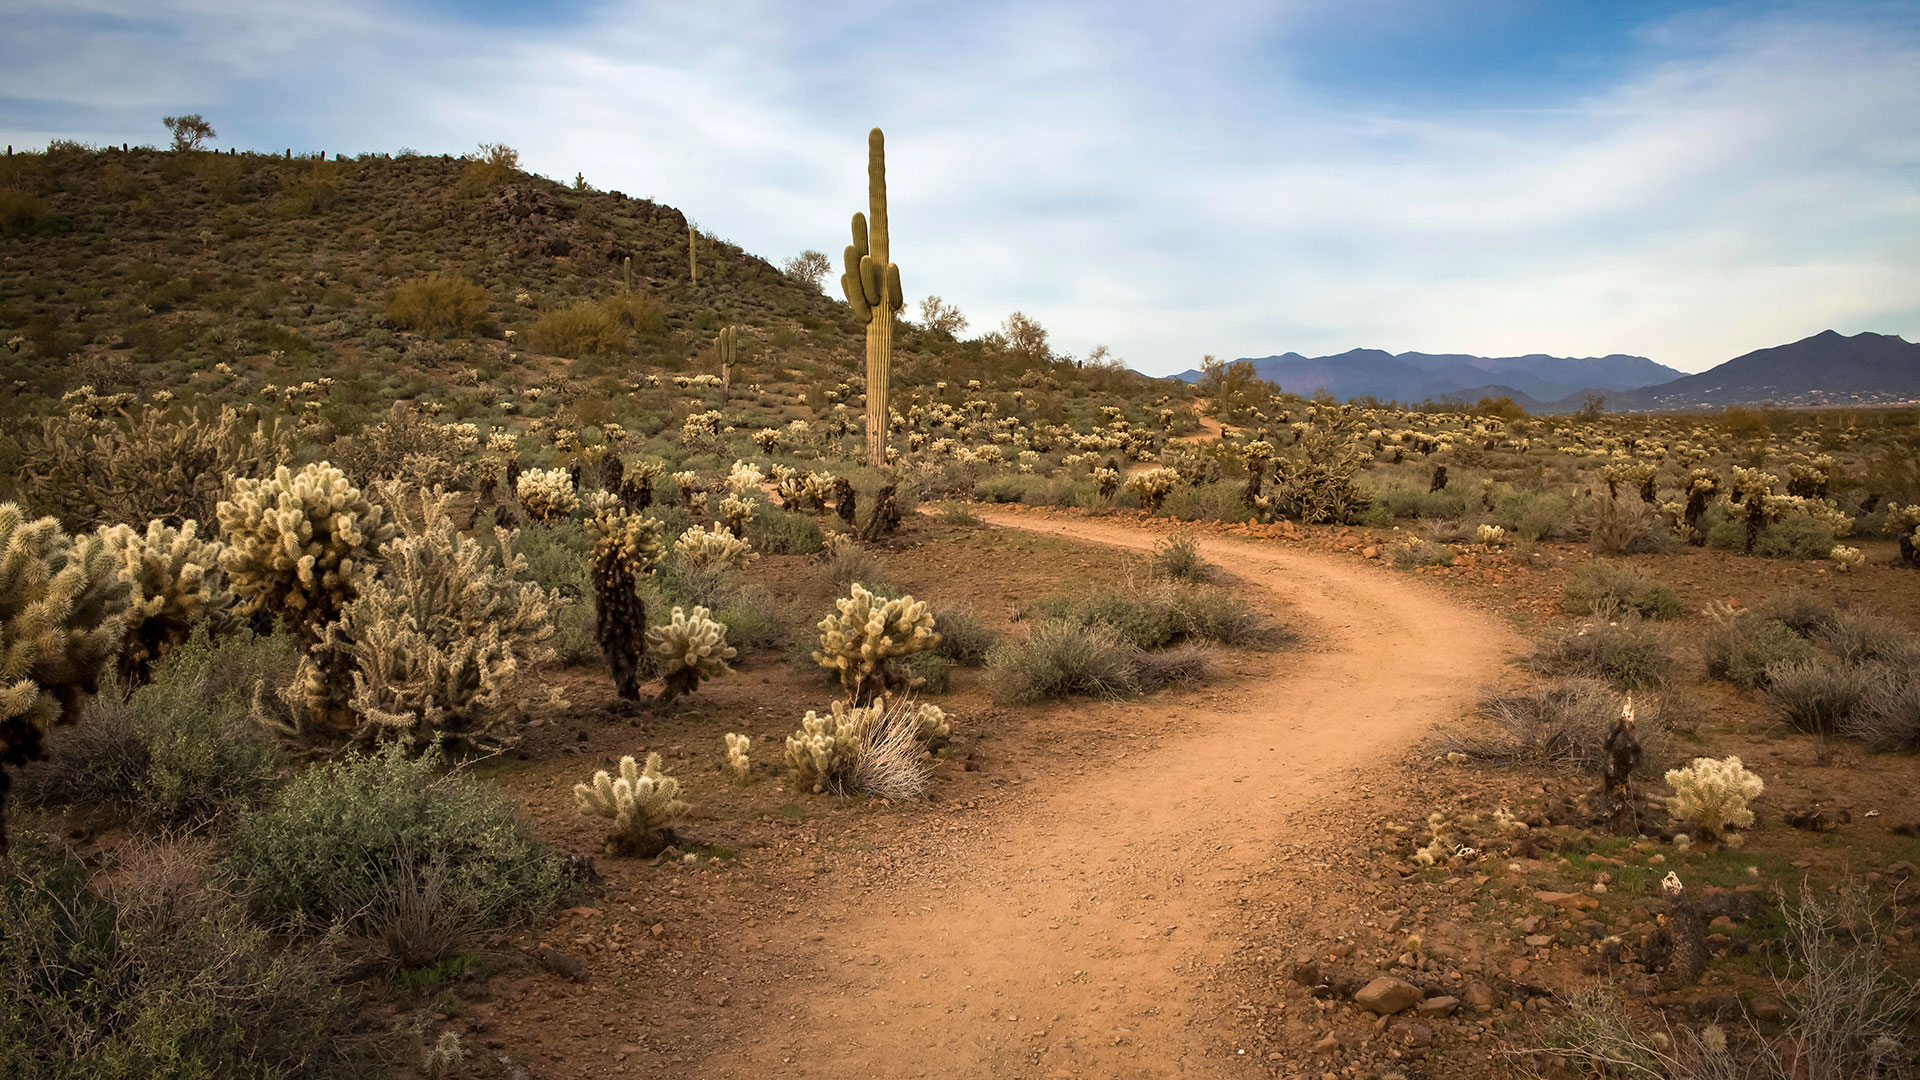 The Ocotillo Trail leads off into the Arizona desert.